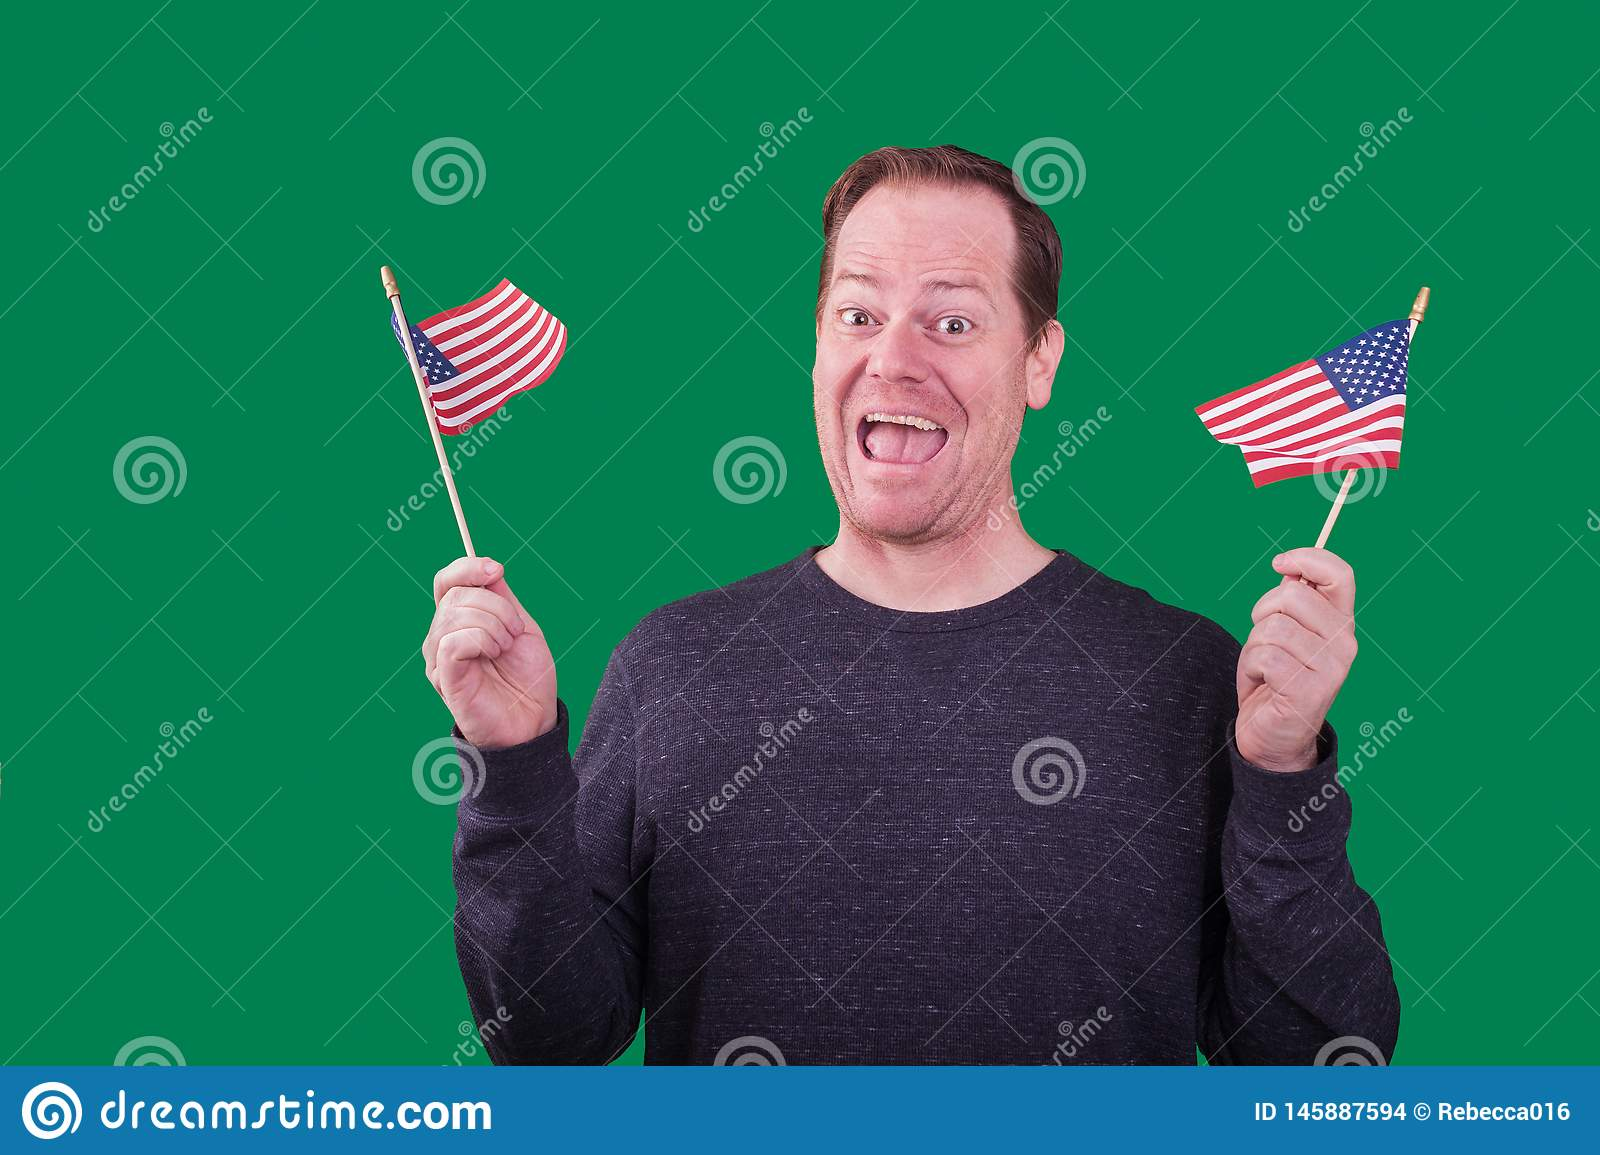 Patriotic man waving two American flags excited happy facial expression on green screen background